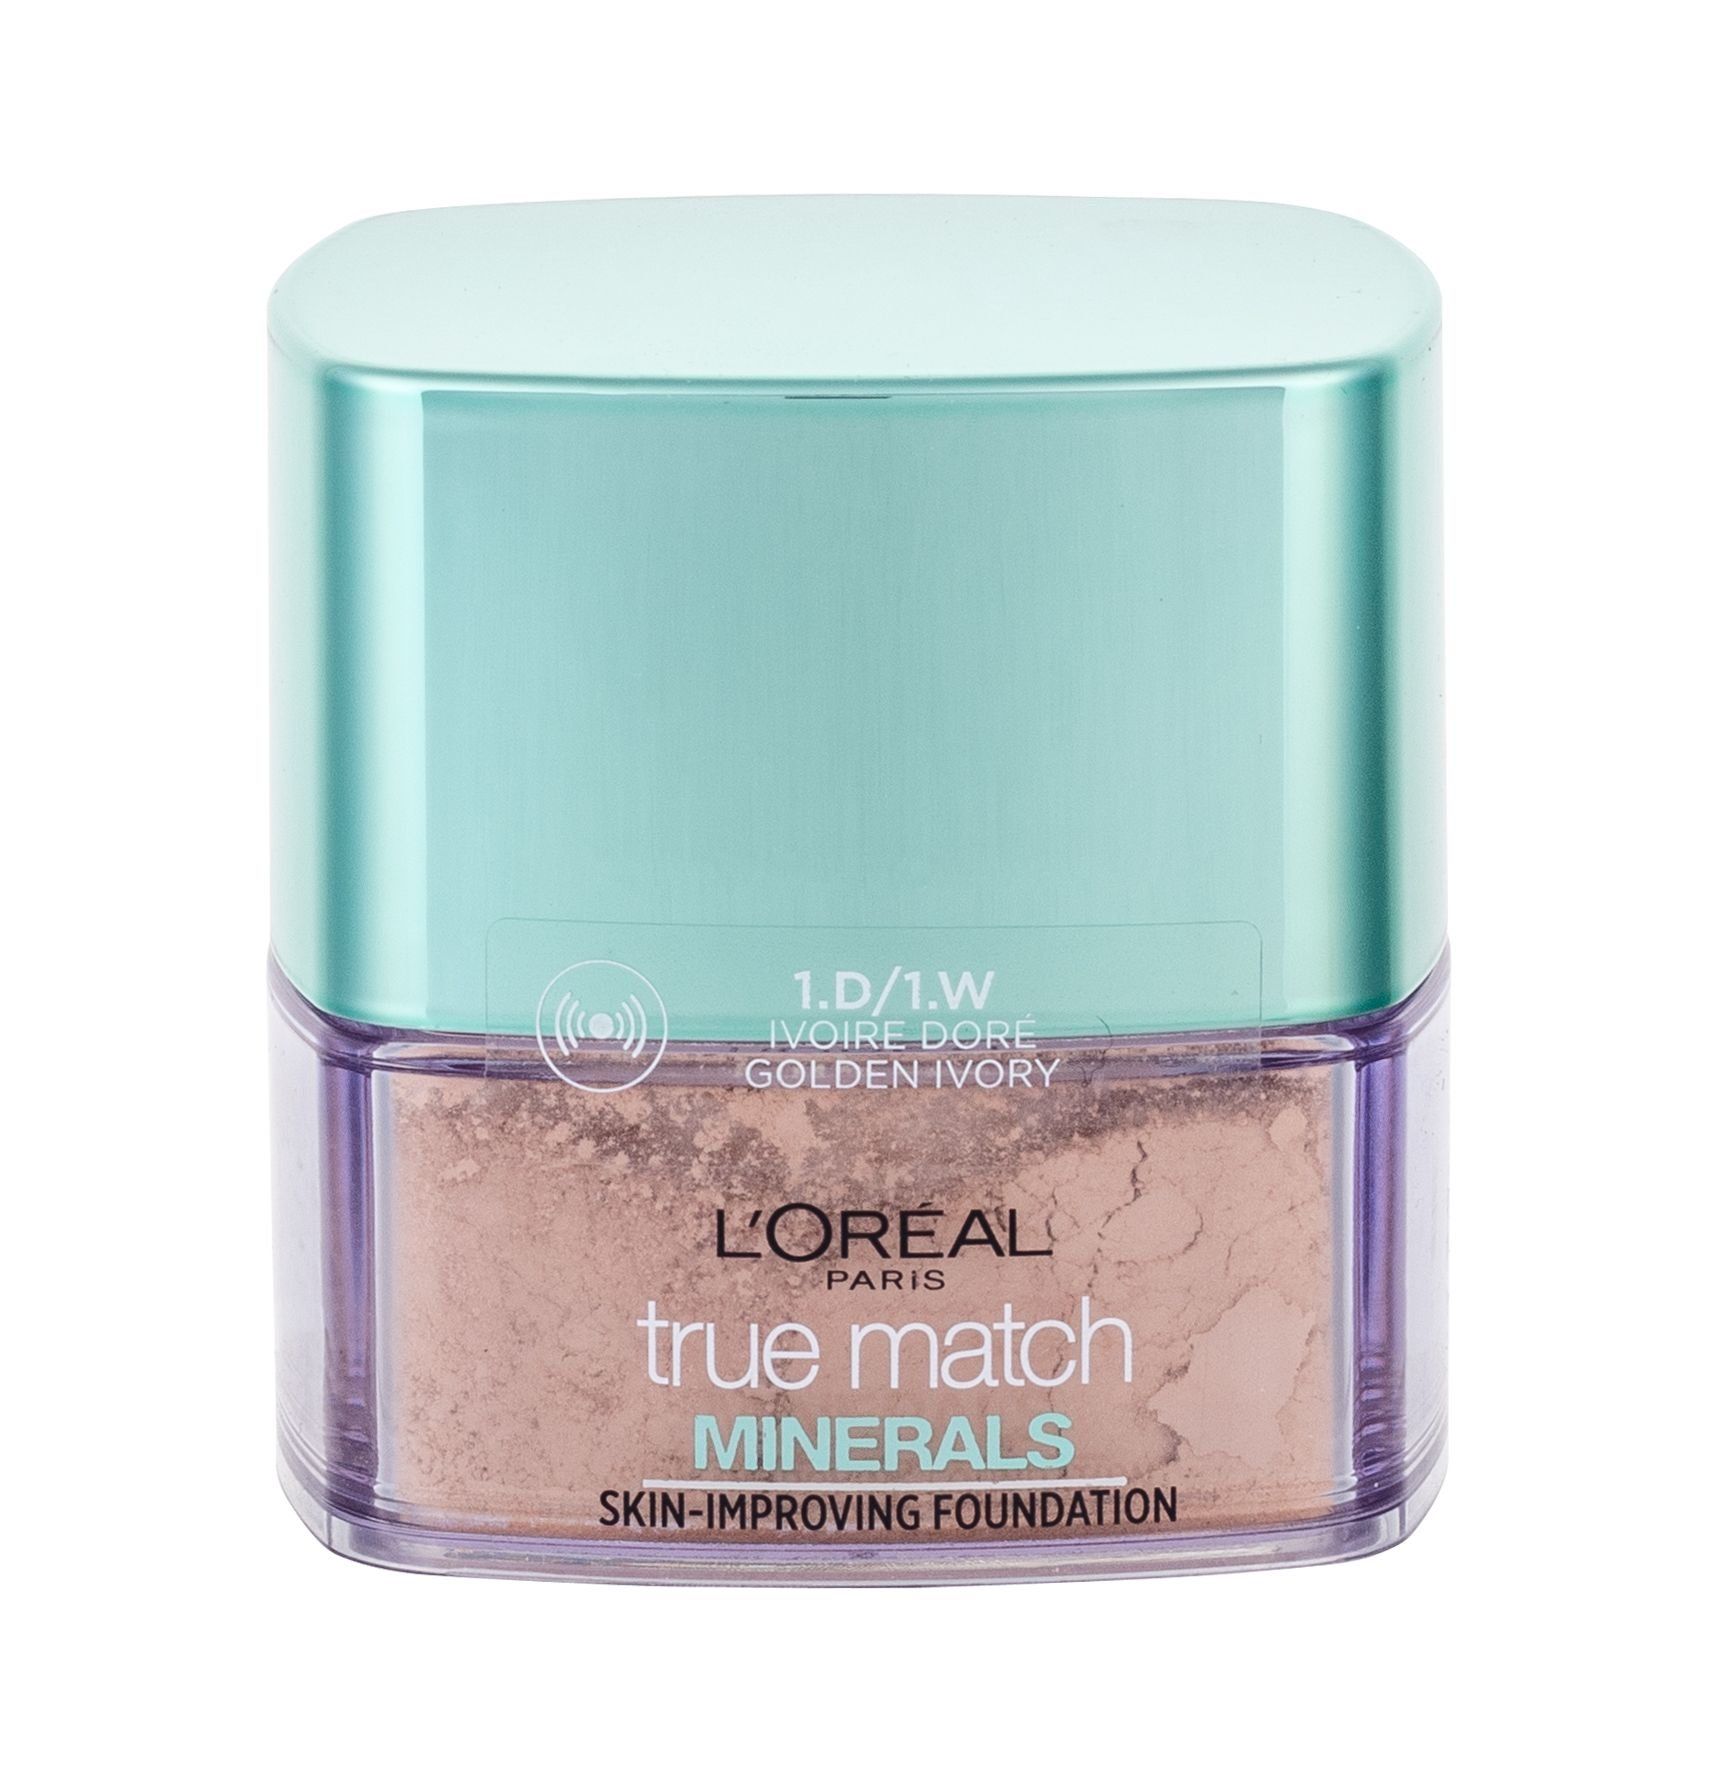 L´Oréal Paris True Match Cosmetic 10ml 1.D/1.W Golden Ivory